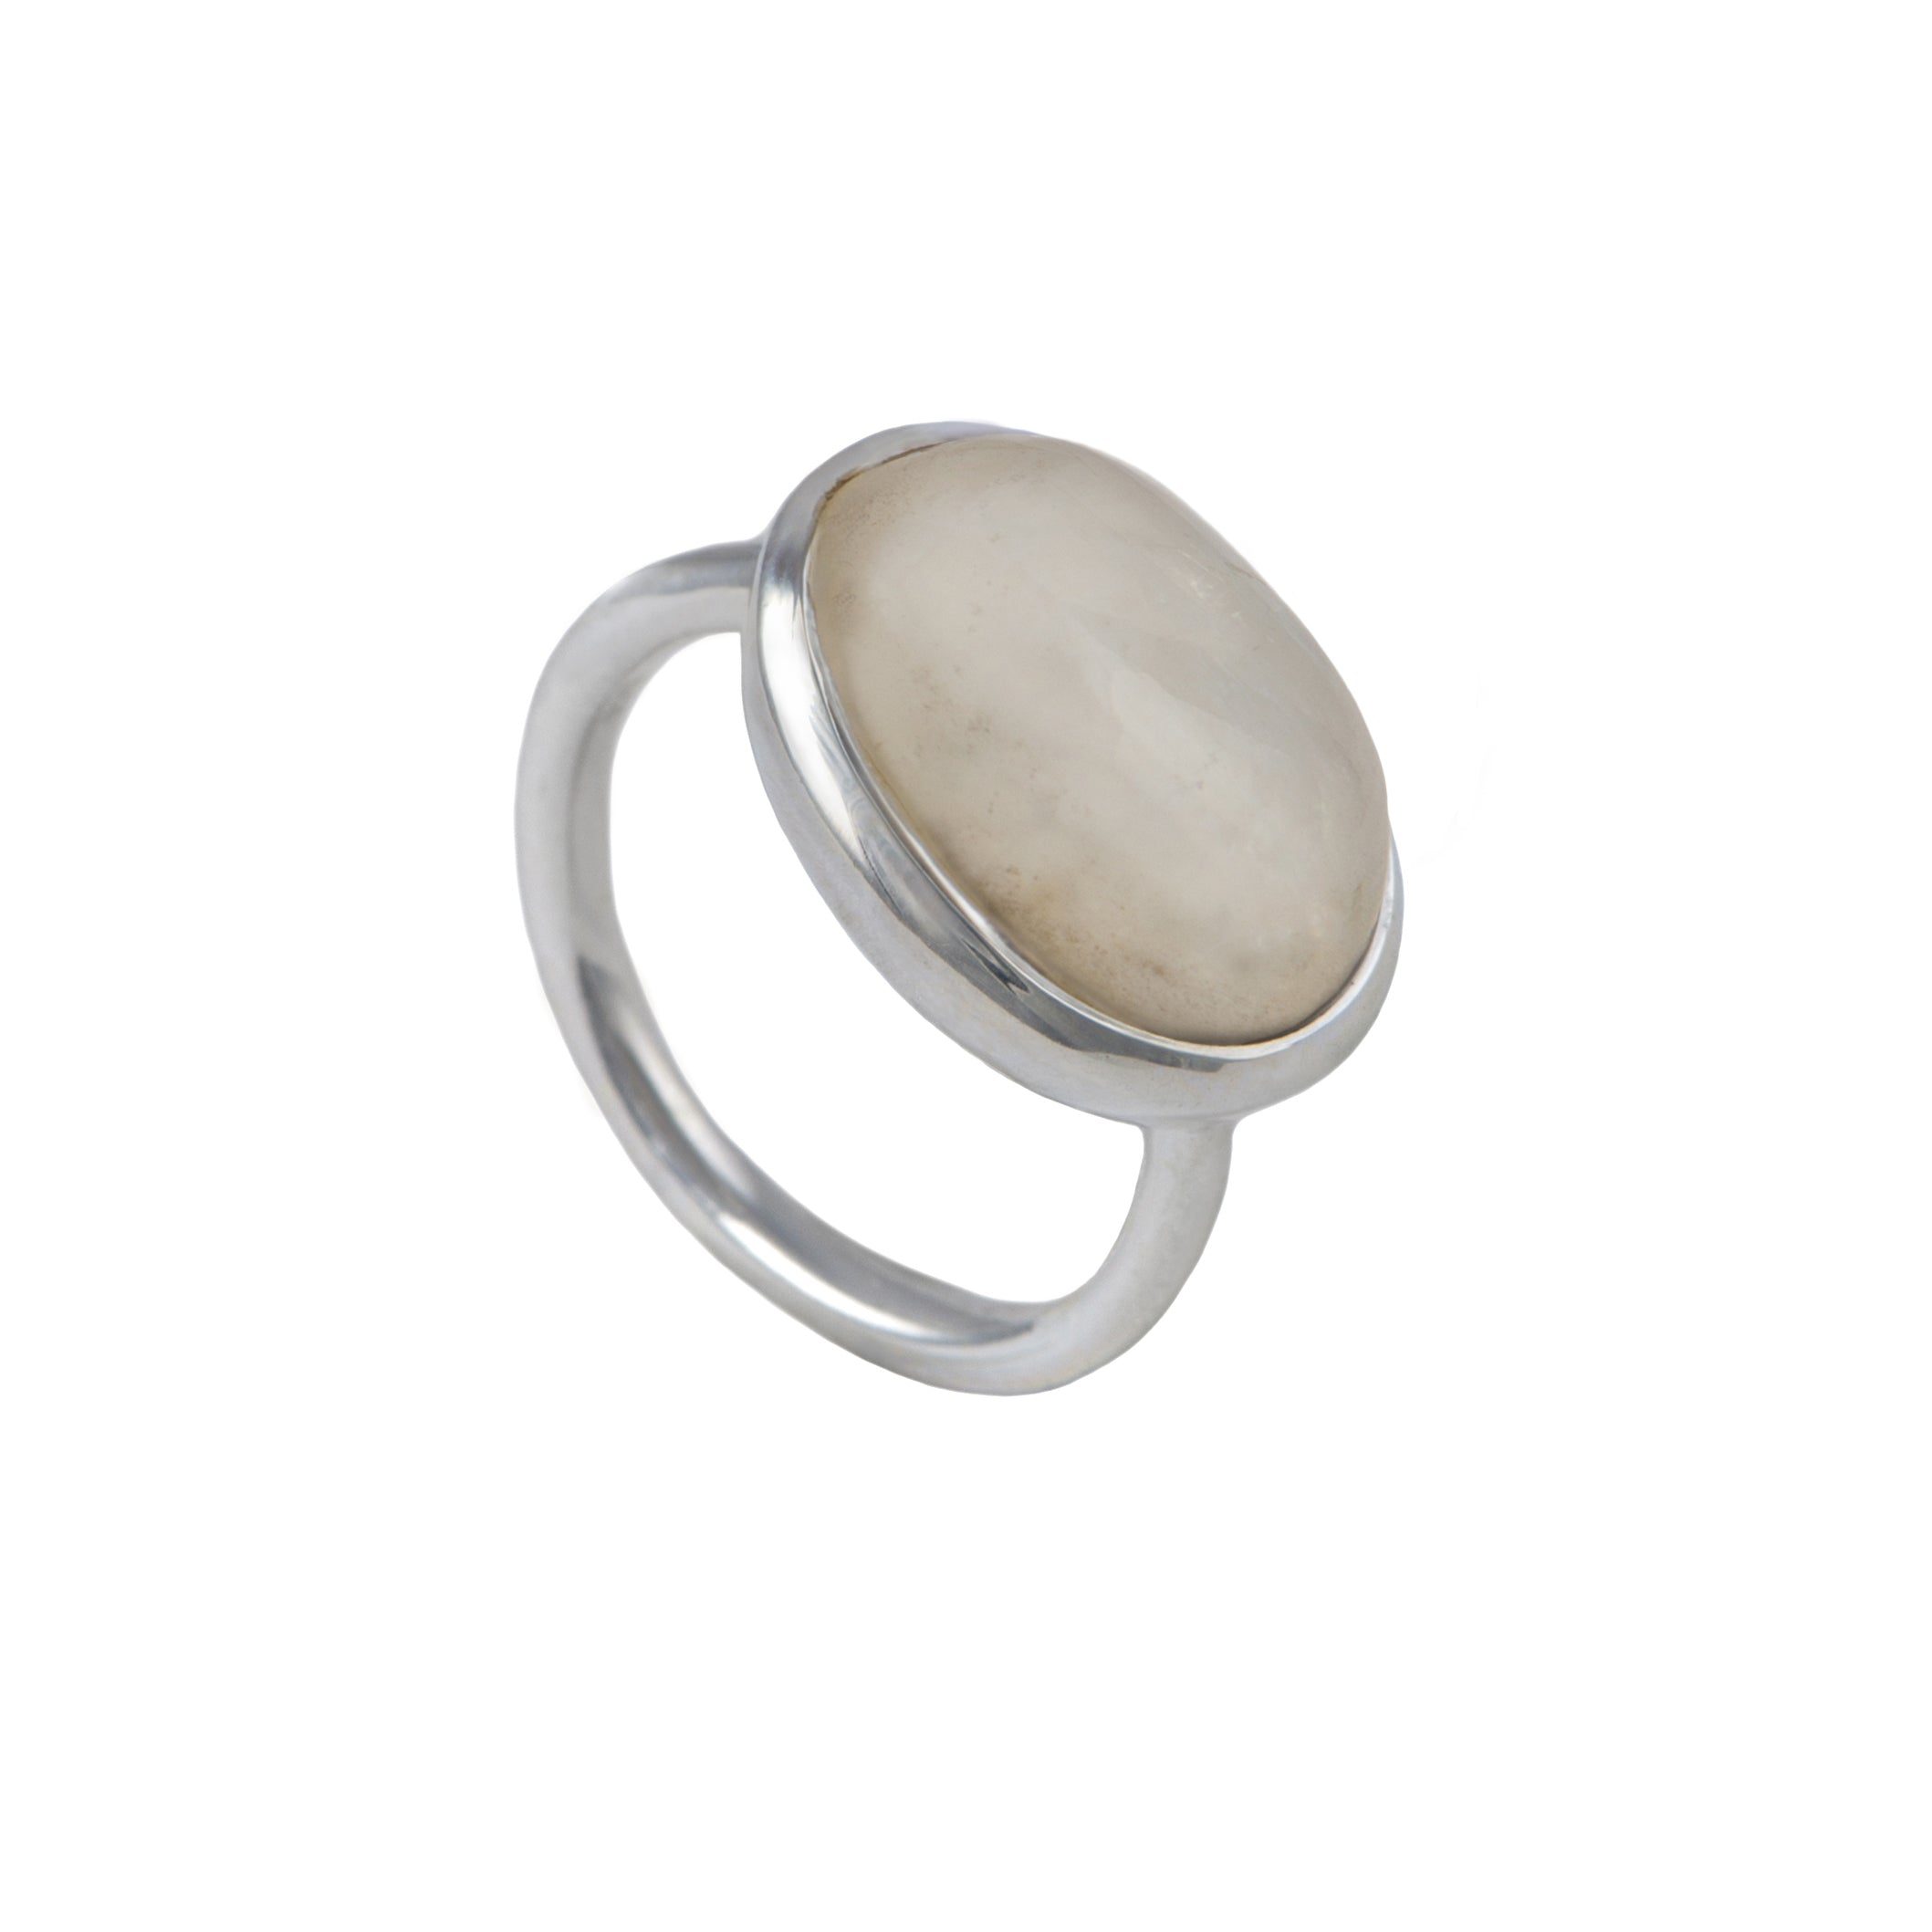 Cabochon Oval Cut Natural Gemstone Sterling Silver Ring